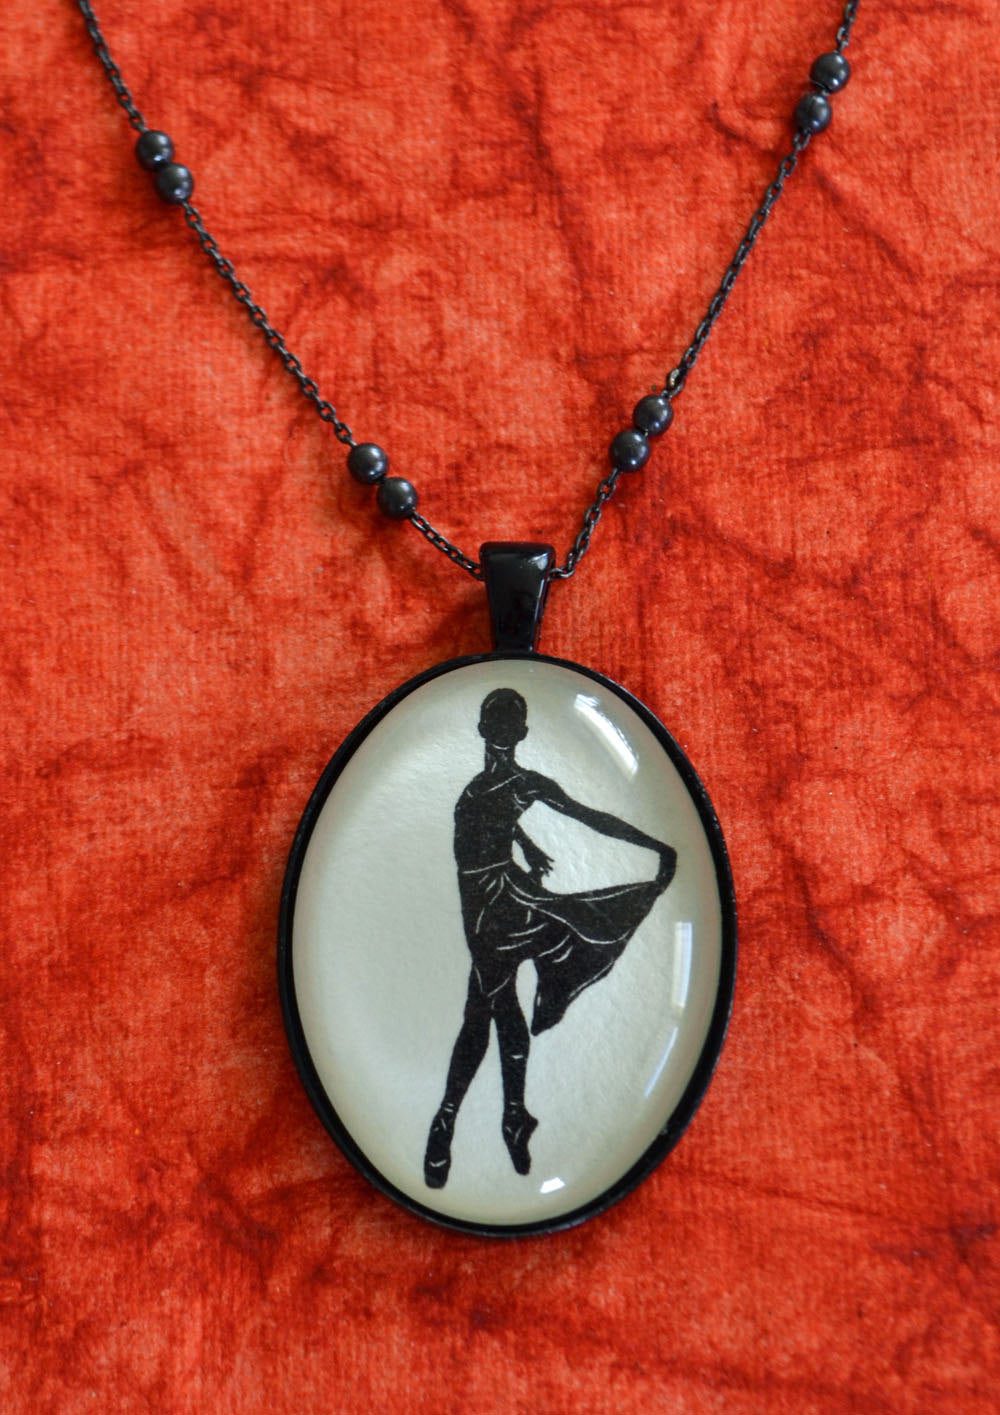 WENDY WHELAN Necklace, pendant on chain - Silhouette Jewelry